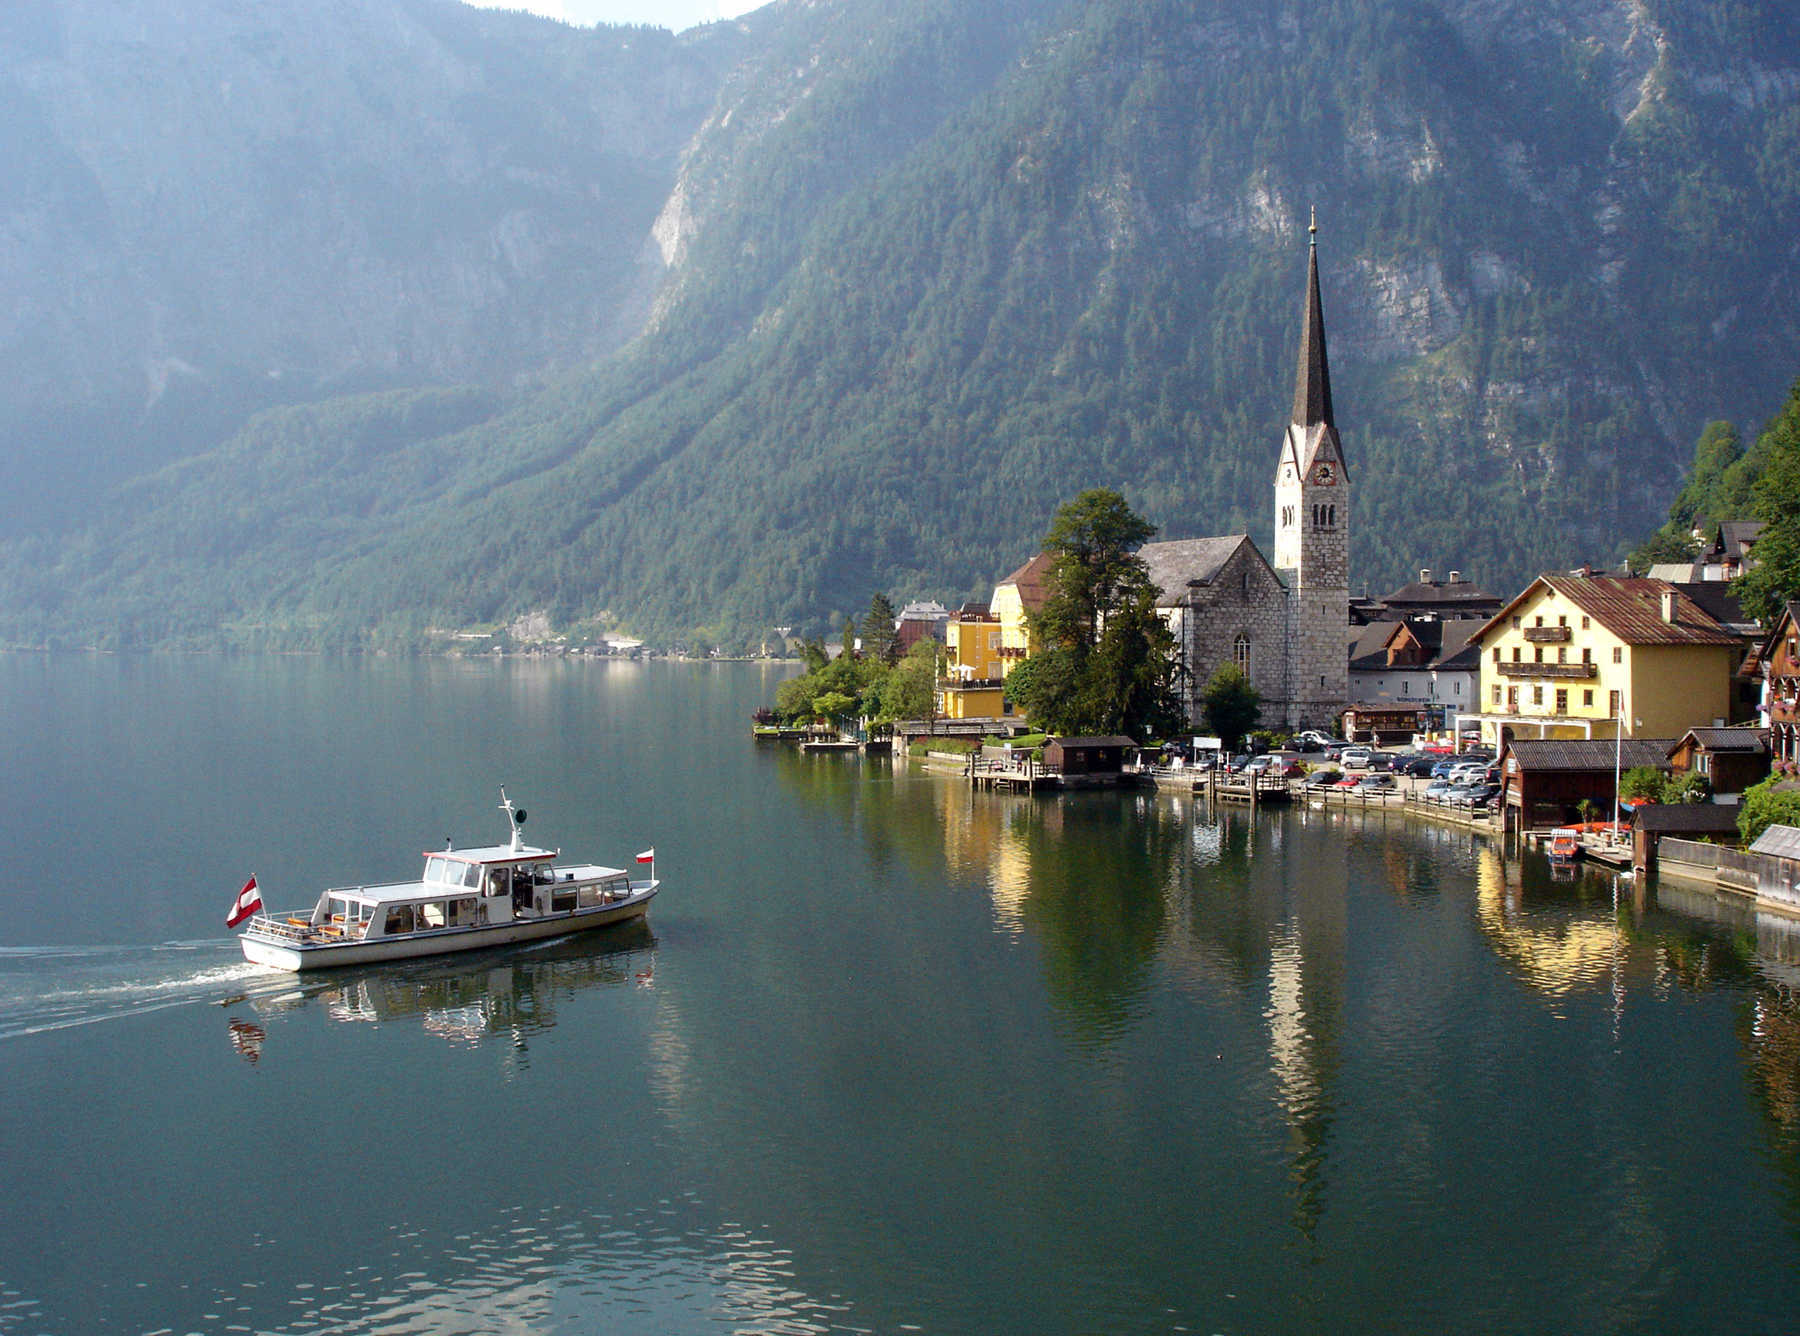 Boat on Lake in Hallstatt, Austria